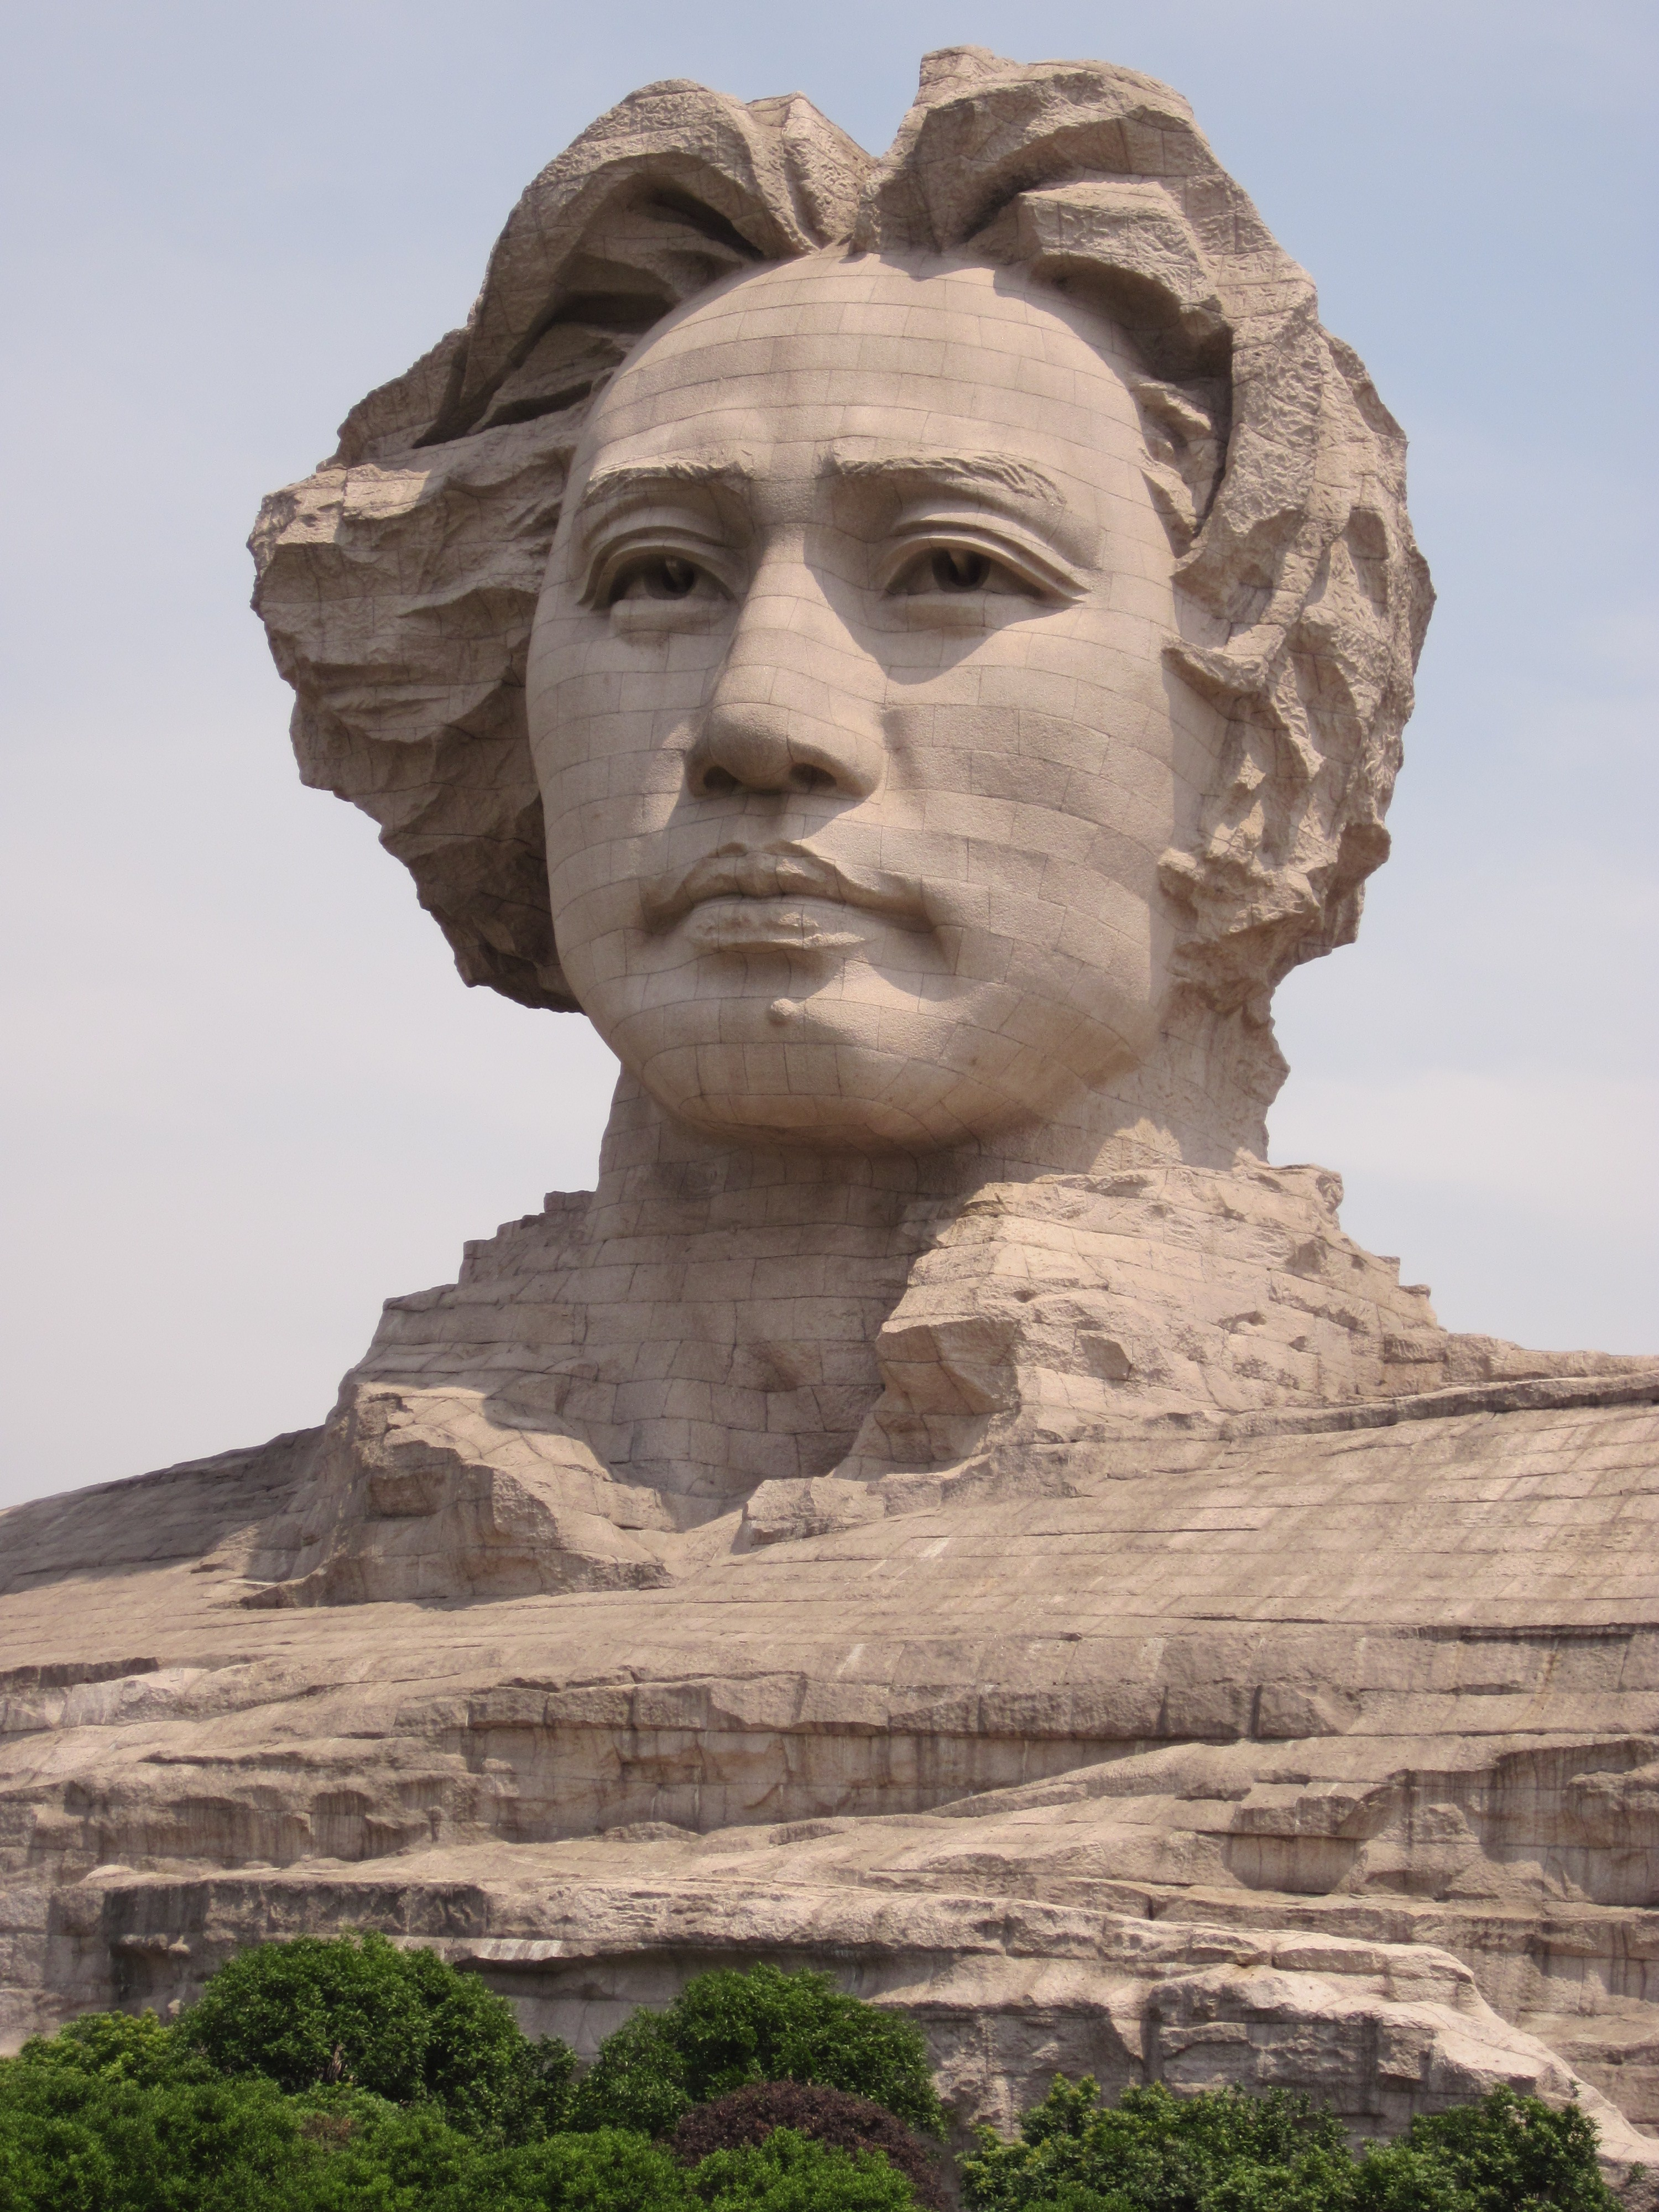 mao zedong A brief profile of chinese revolution figure mao zedong, written by alpha history  authors.